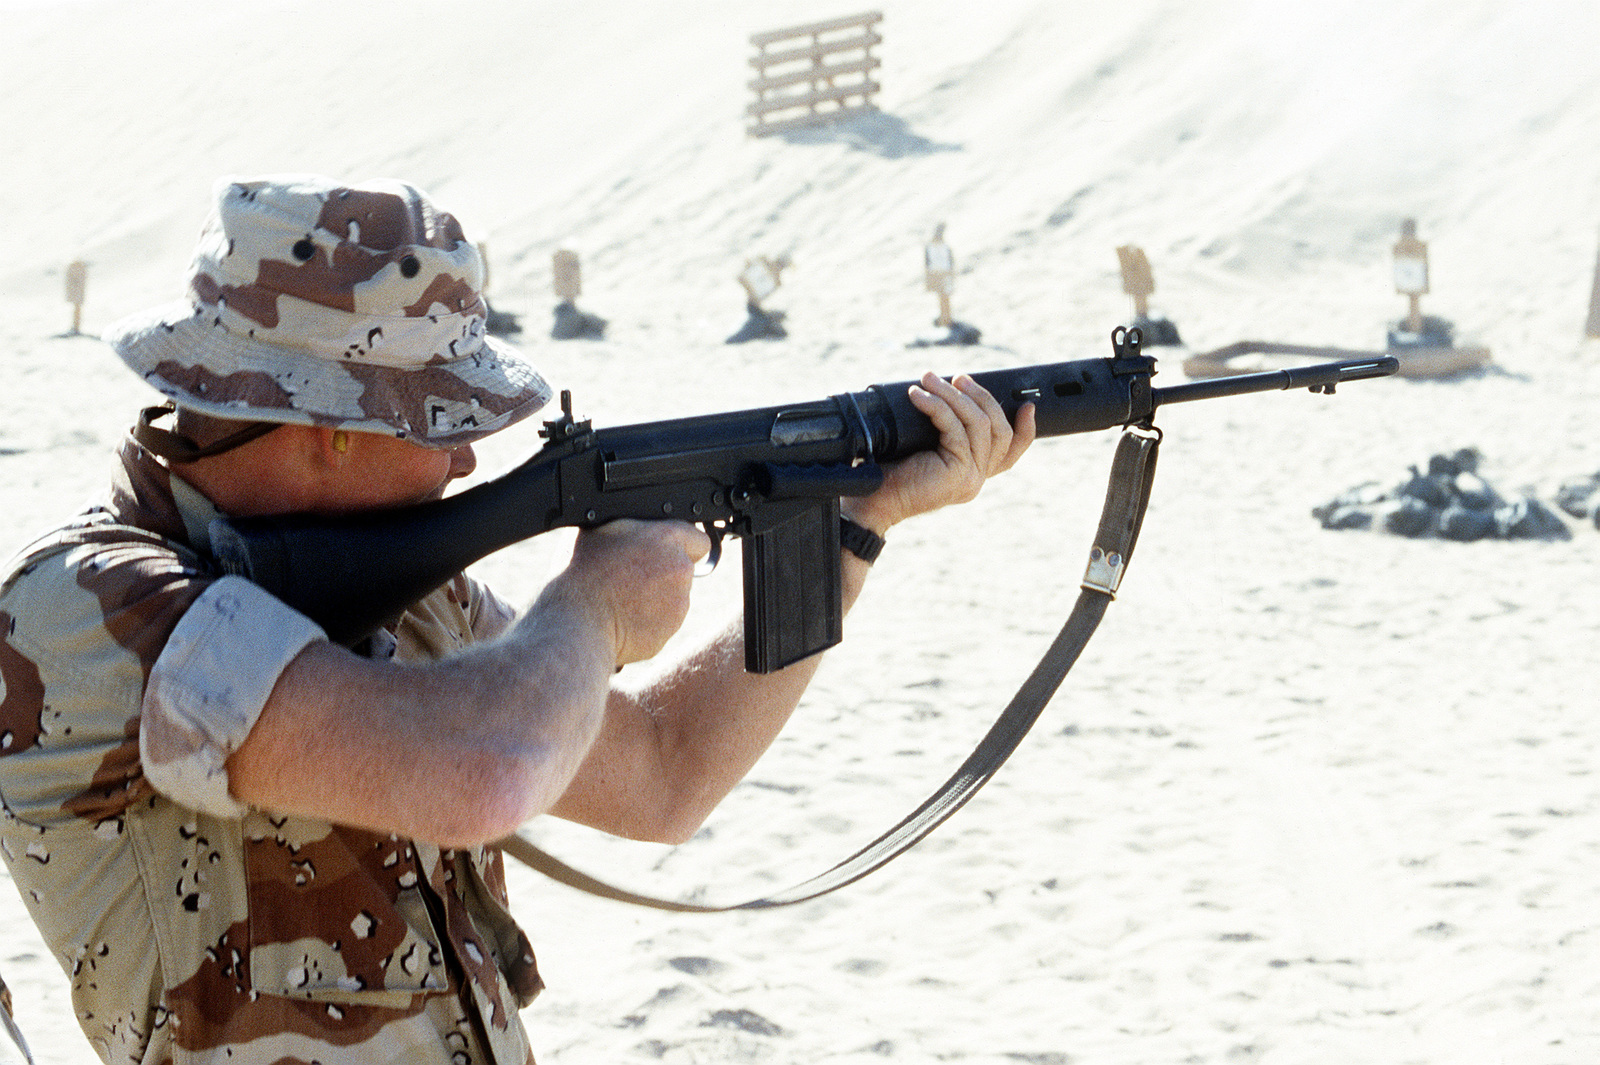 A Marine from 7th Platoon, 1ST Force Reconnaissance Company